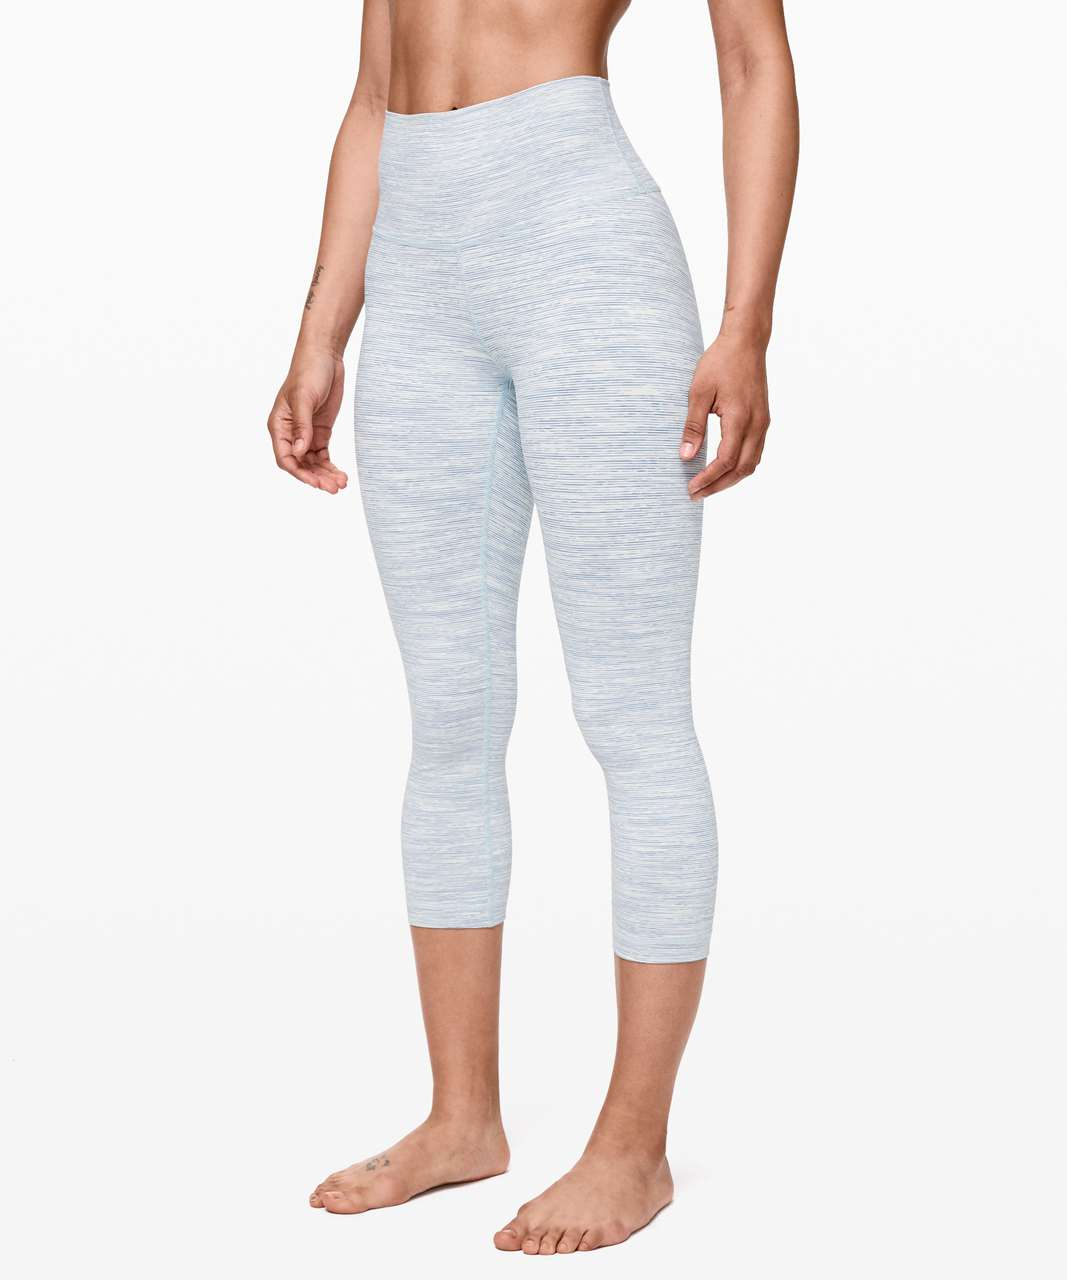 "Lululemon Wunder Under Crop (High-Rise) *21"" - Wee Are From Space Sheer Blue Chambray"